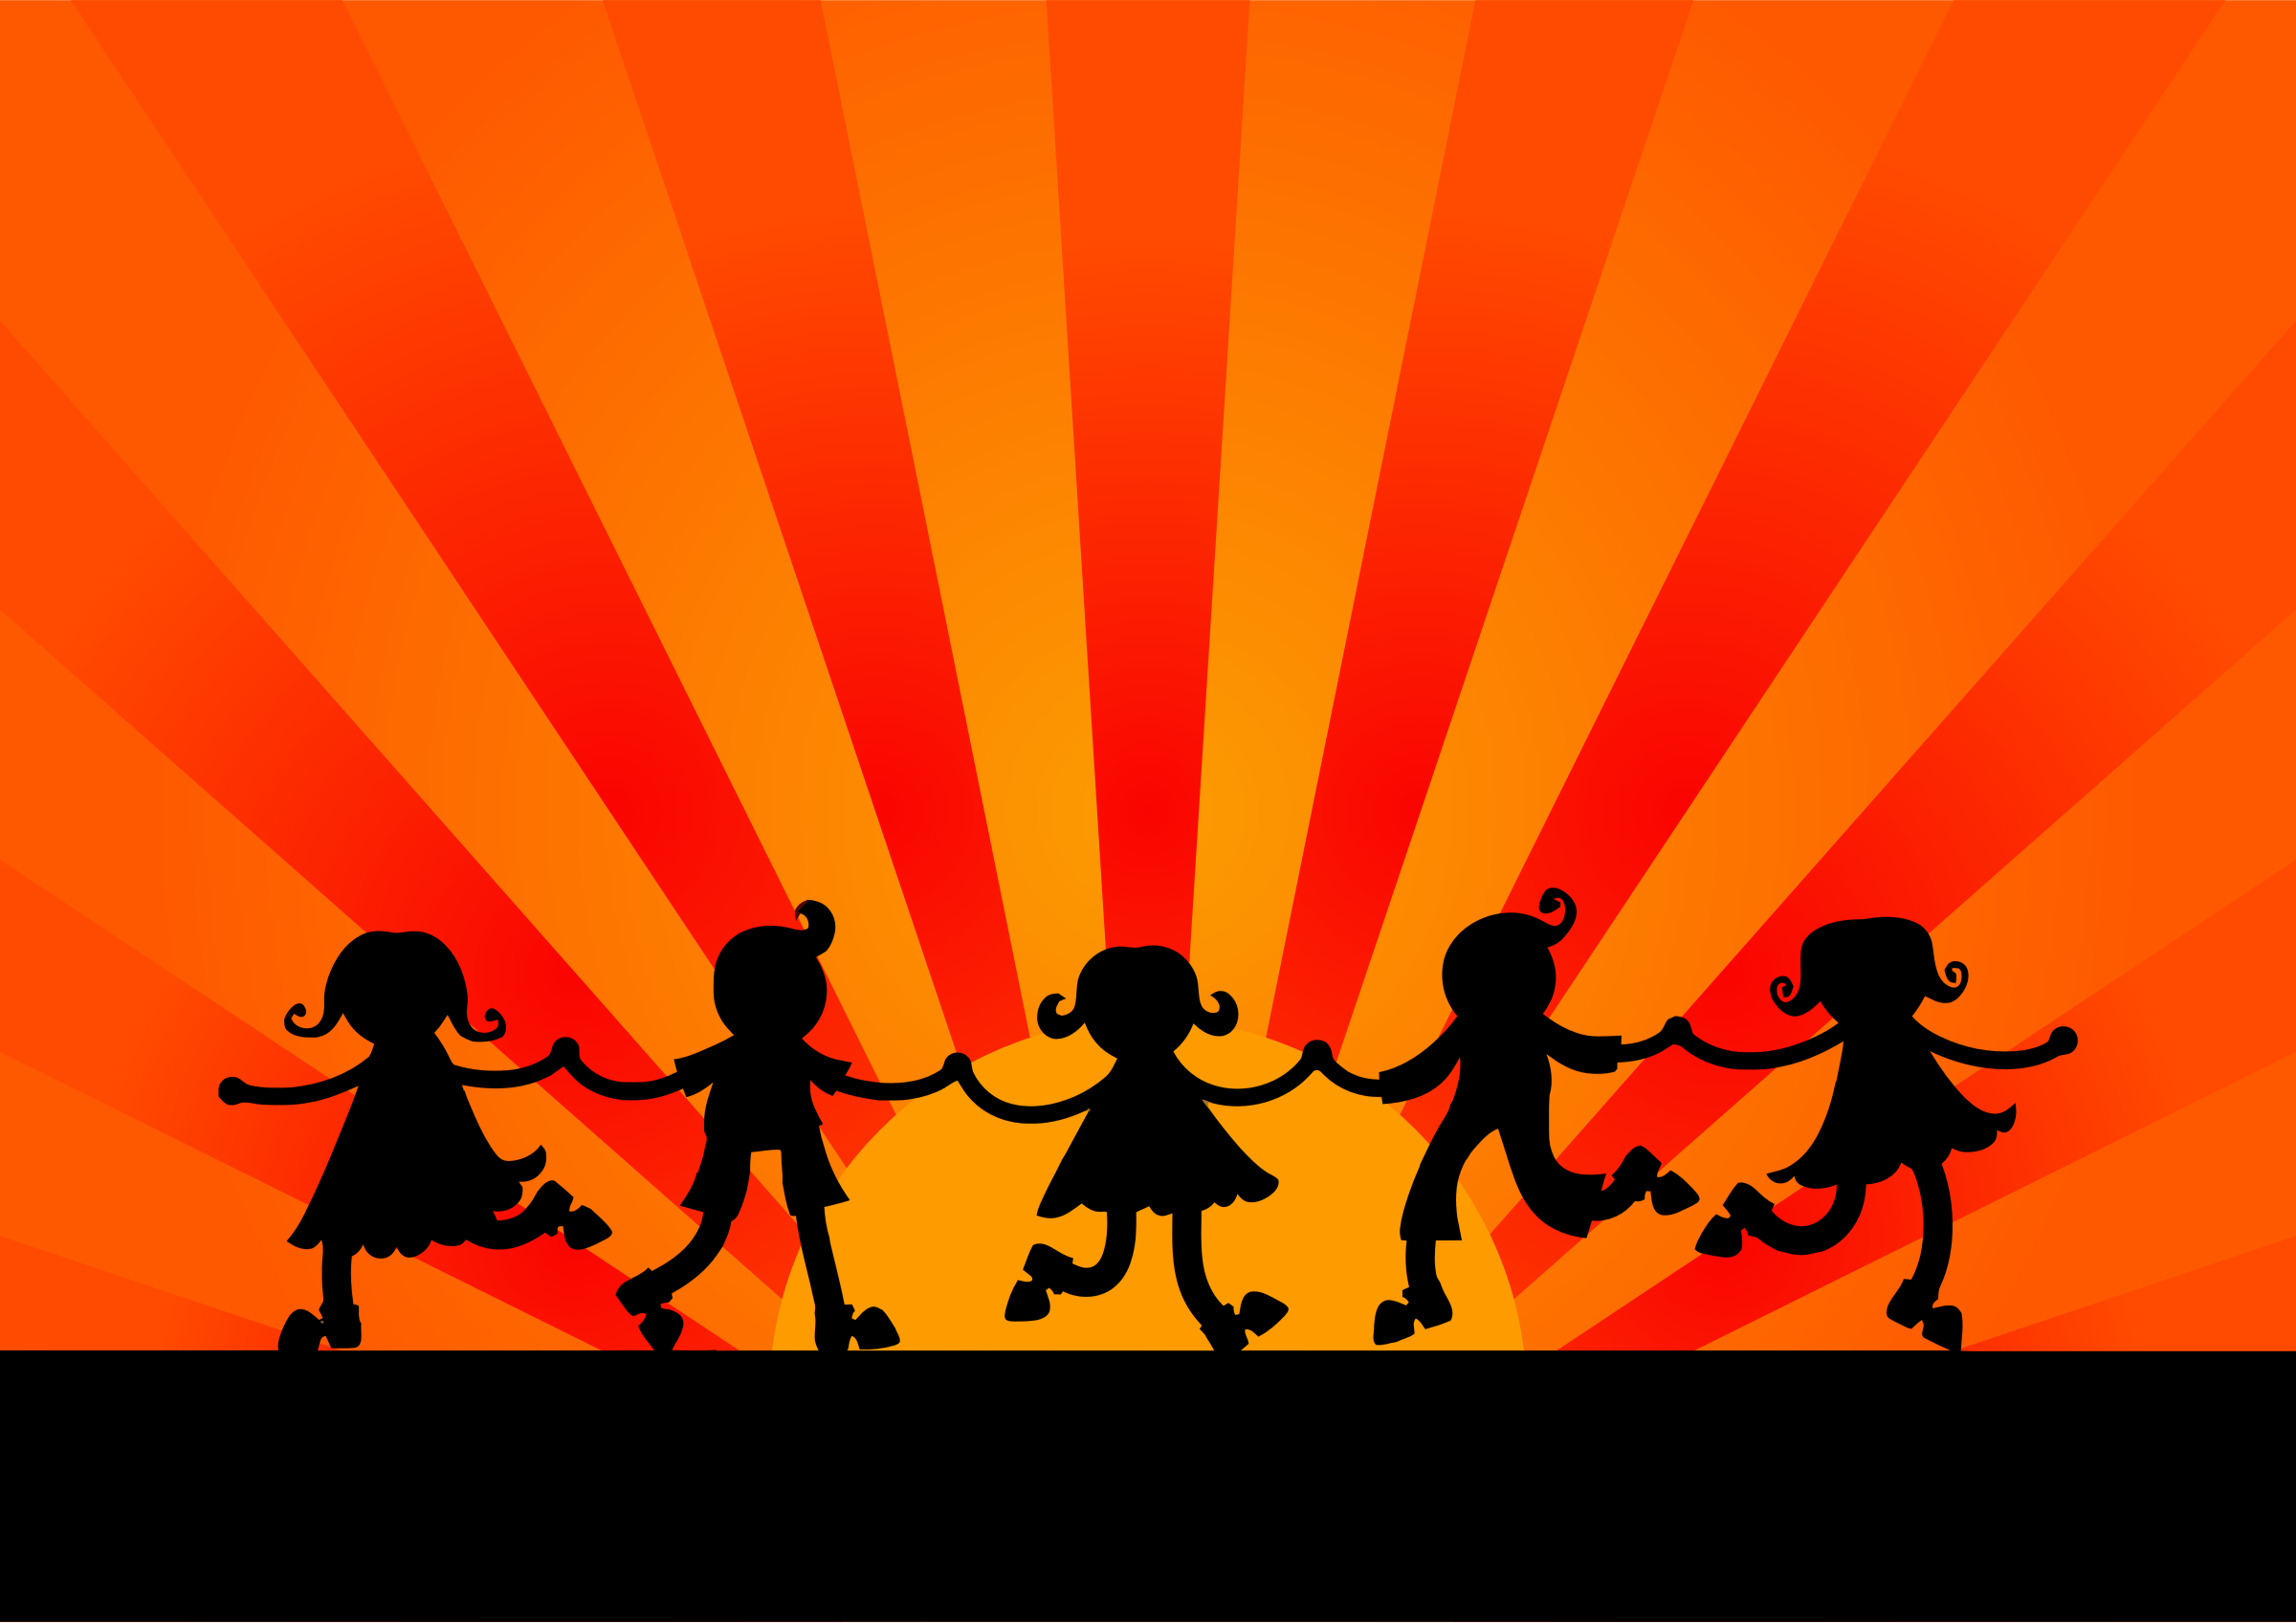 Gods clipart dance Children clipart Clipart Dancing children